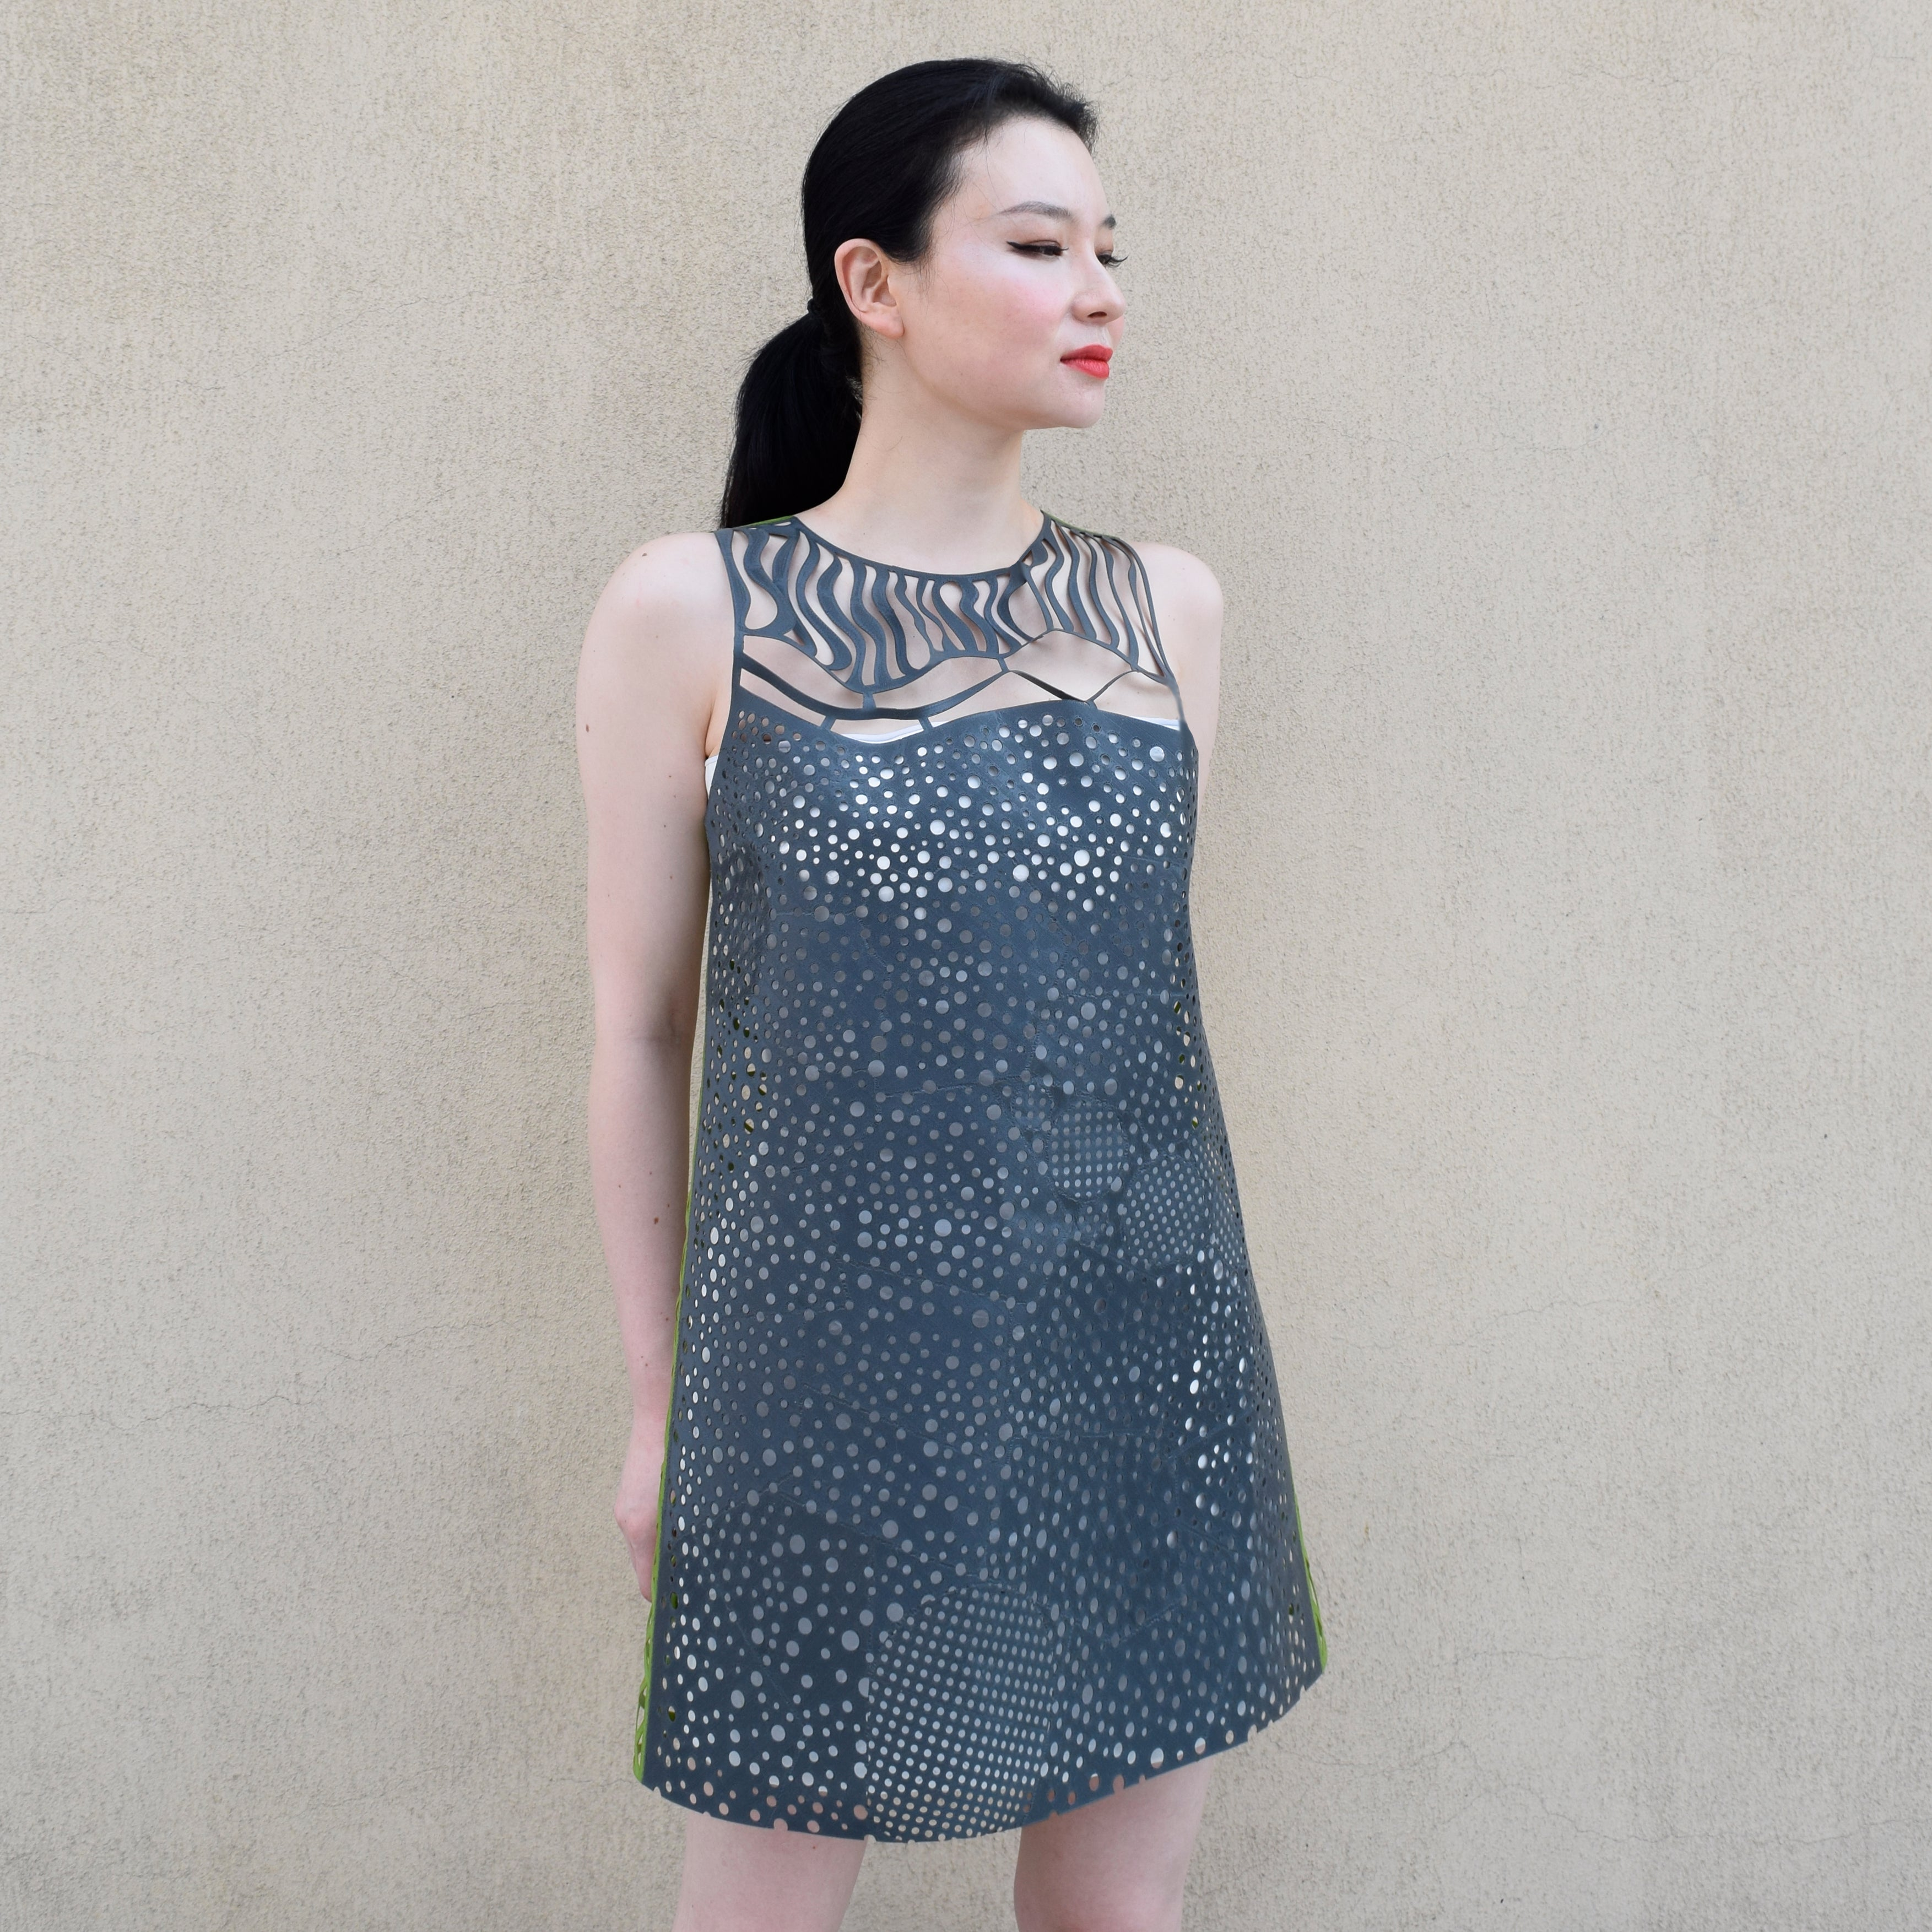 custom 3D printed dress by HEISEL